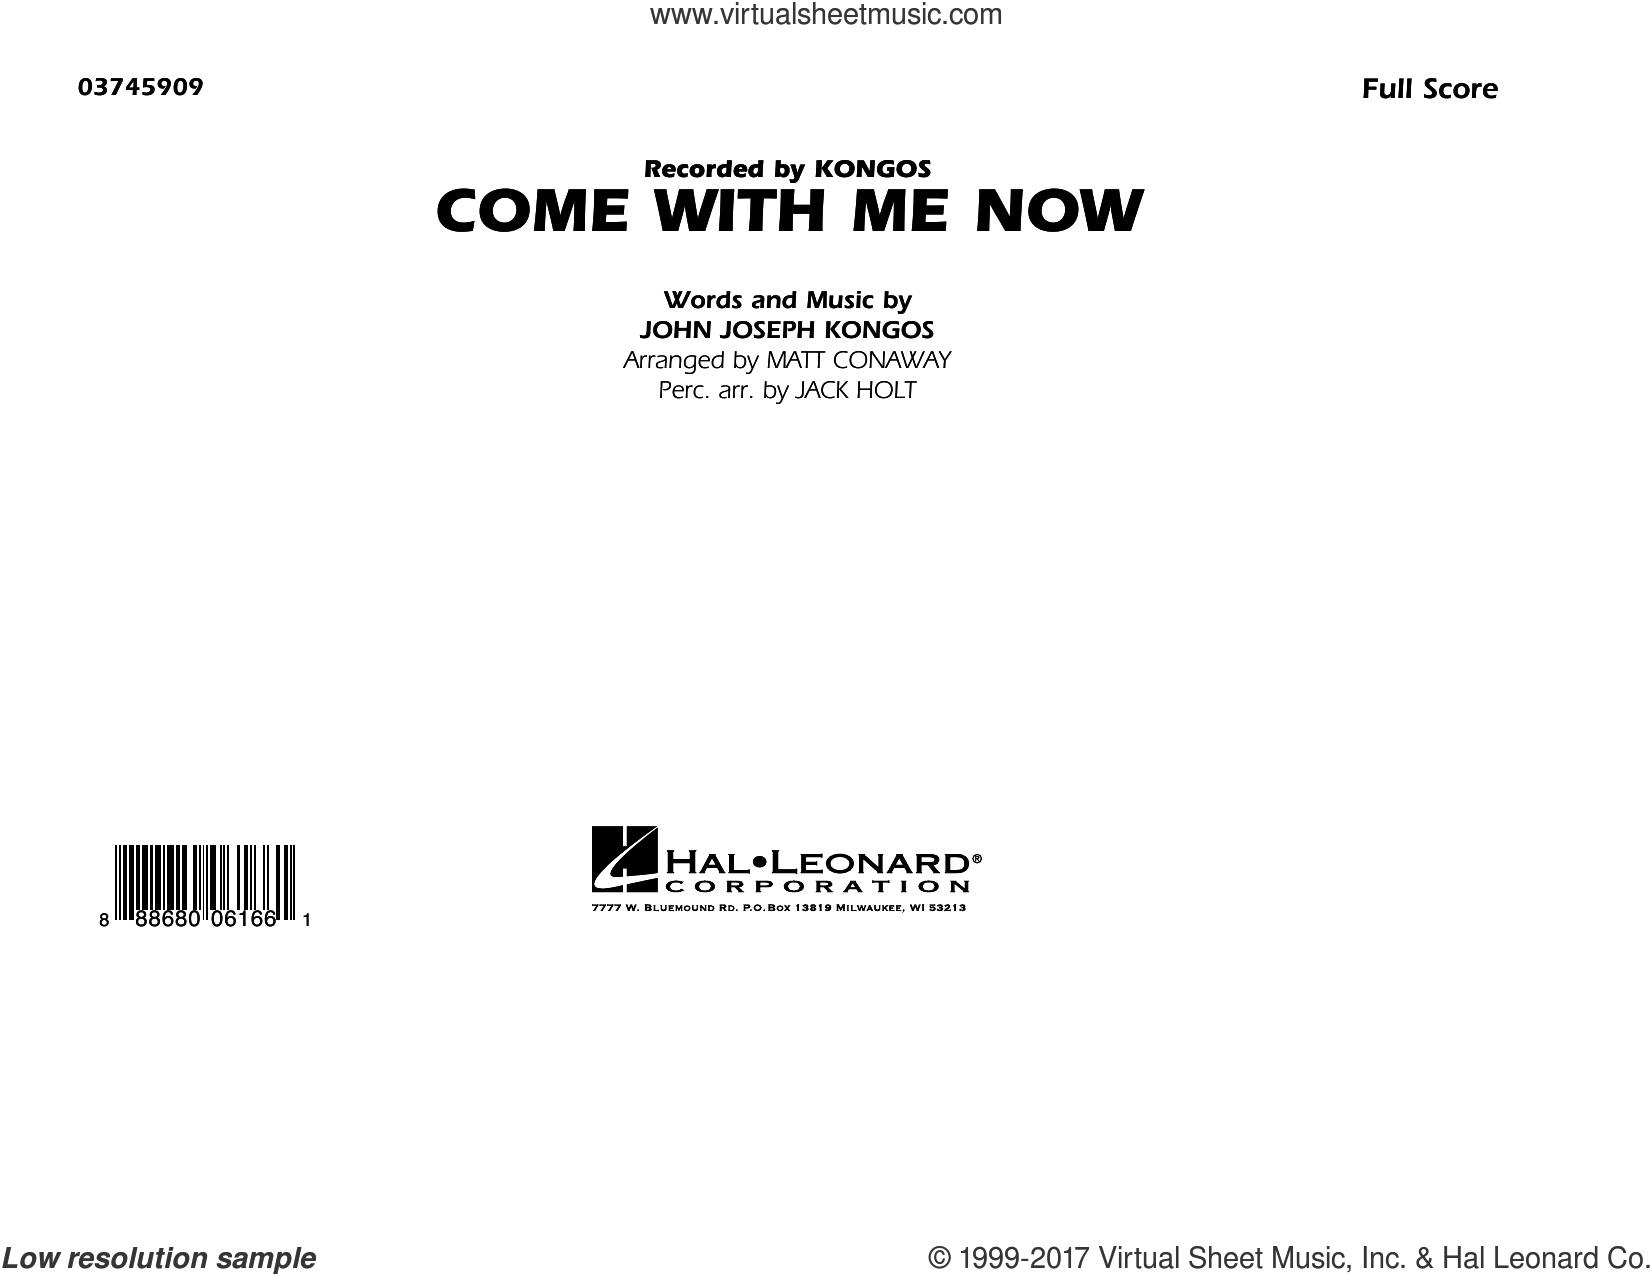 Come with Me Now (COMPLETE) sheet music for marching band by Matt Conaway, John Joseph Kongos and Kongos, intermediate